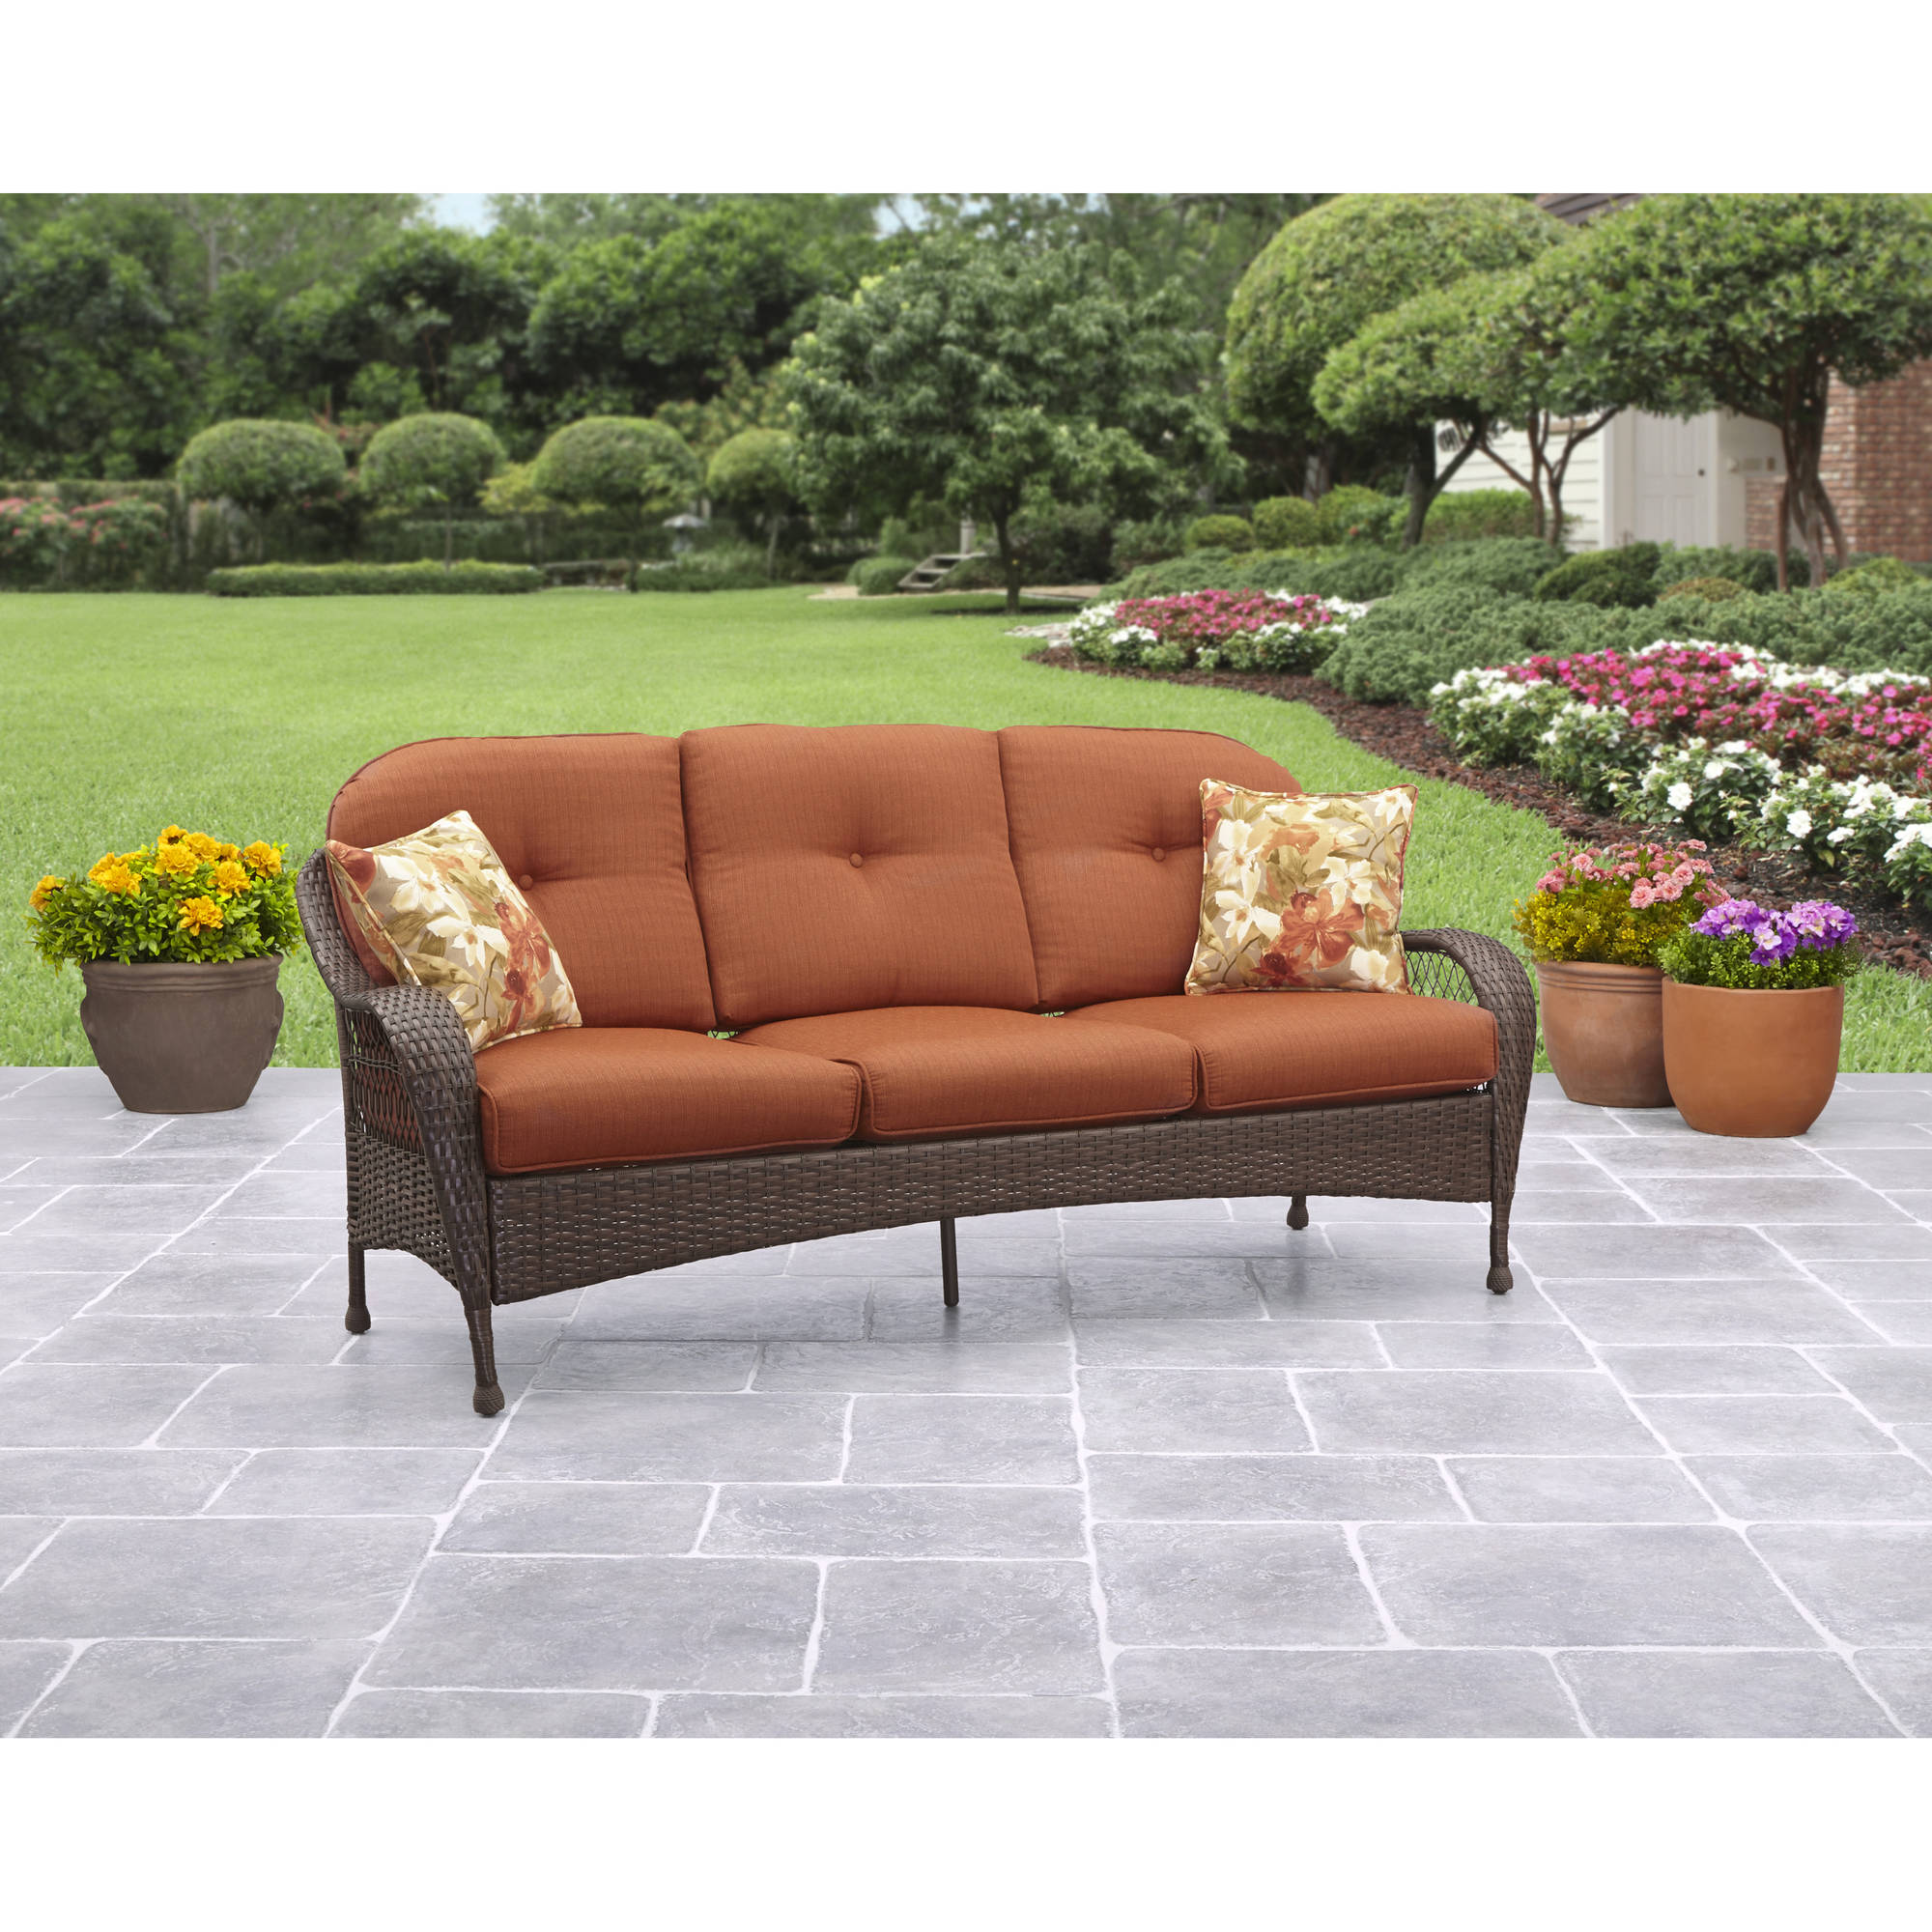 Better Homes And Gardens Azalea Ridge Outdoor Sofa, Seats 3